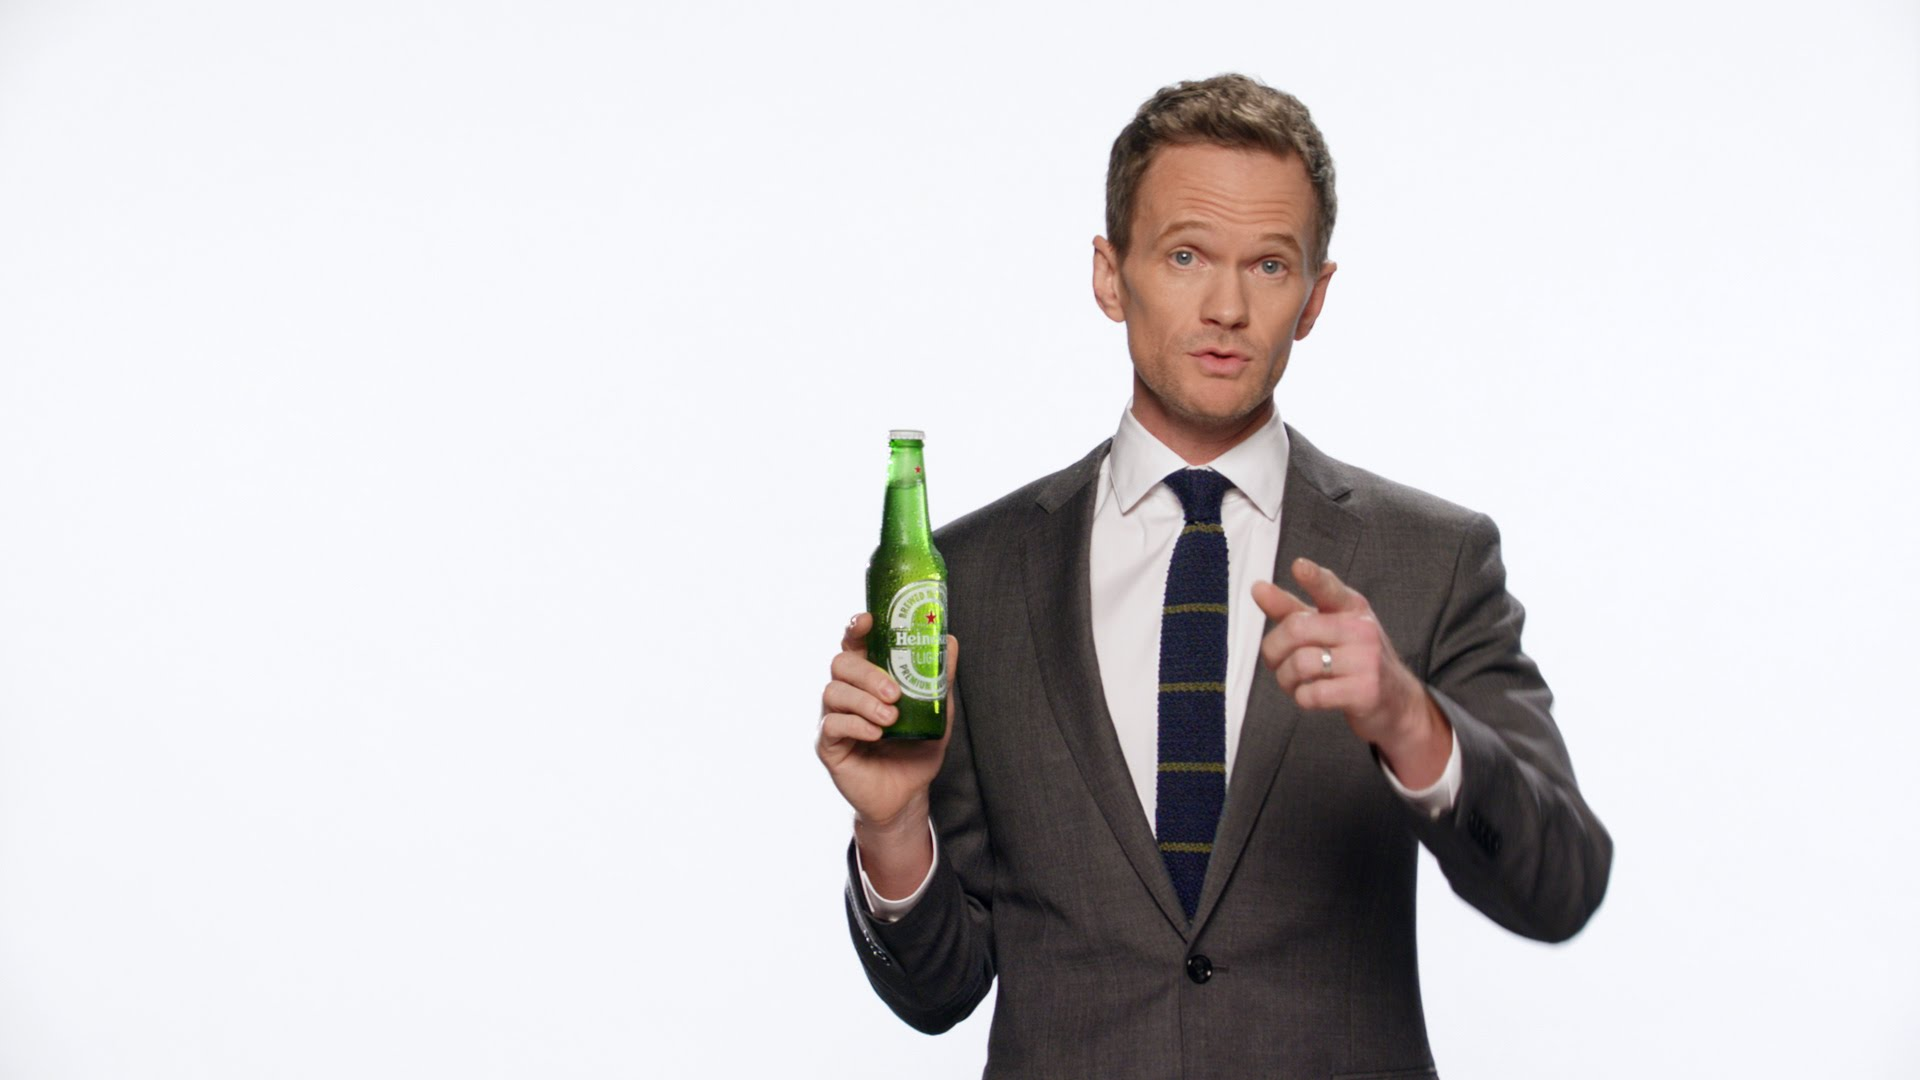 Neil Patrick Harris Full hd wallpapers